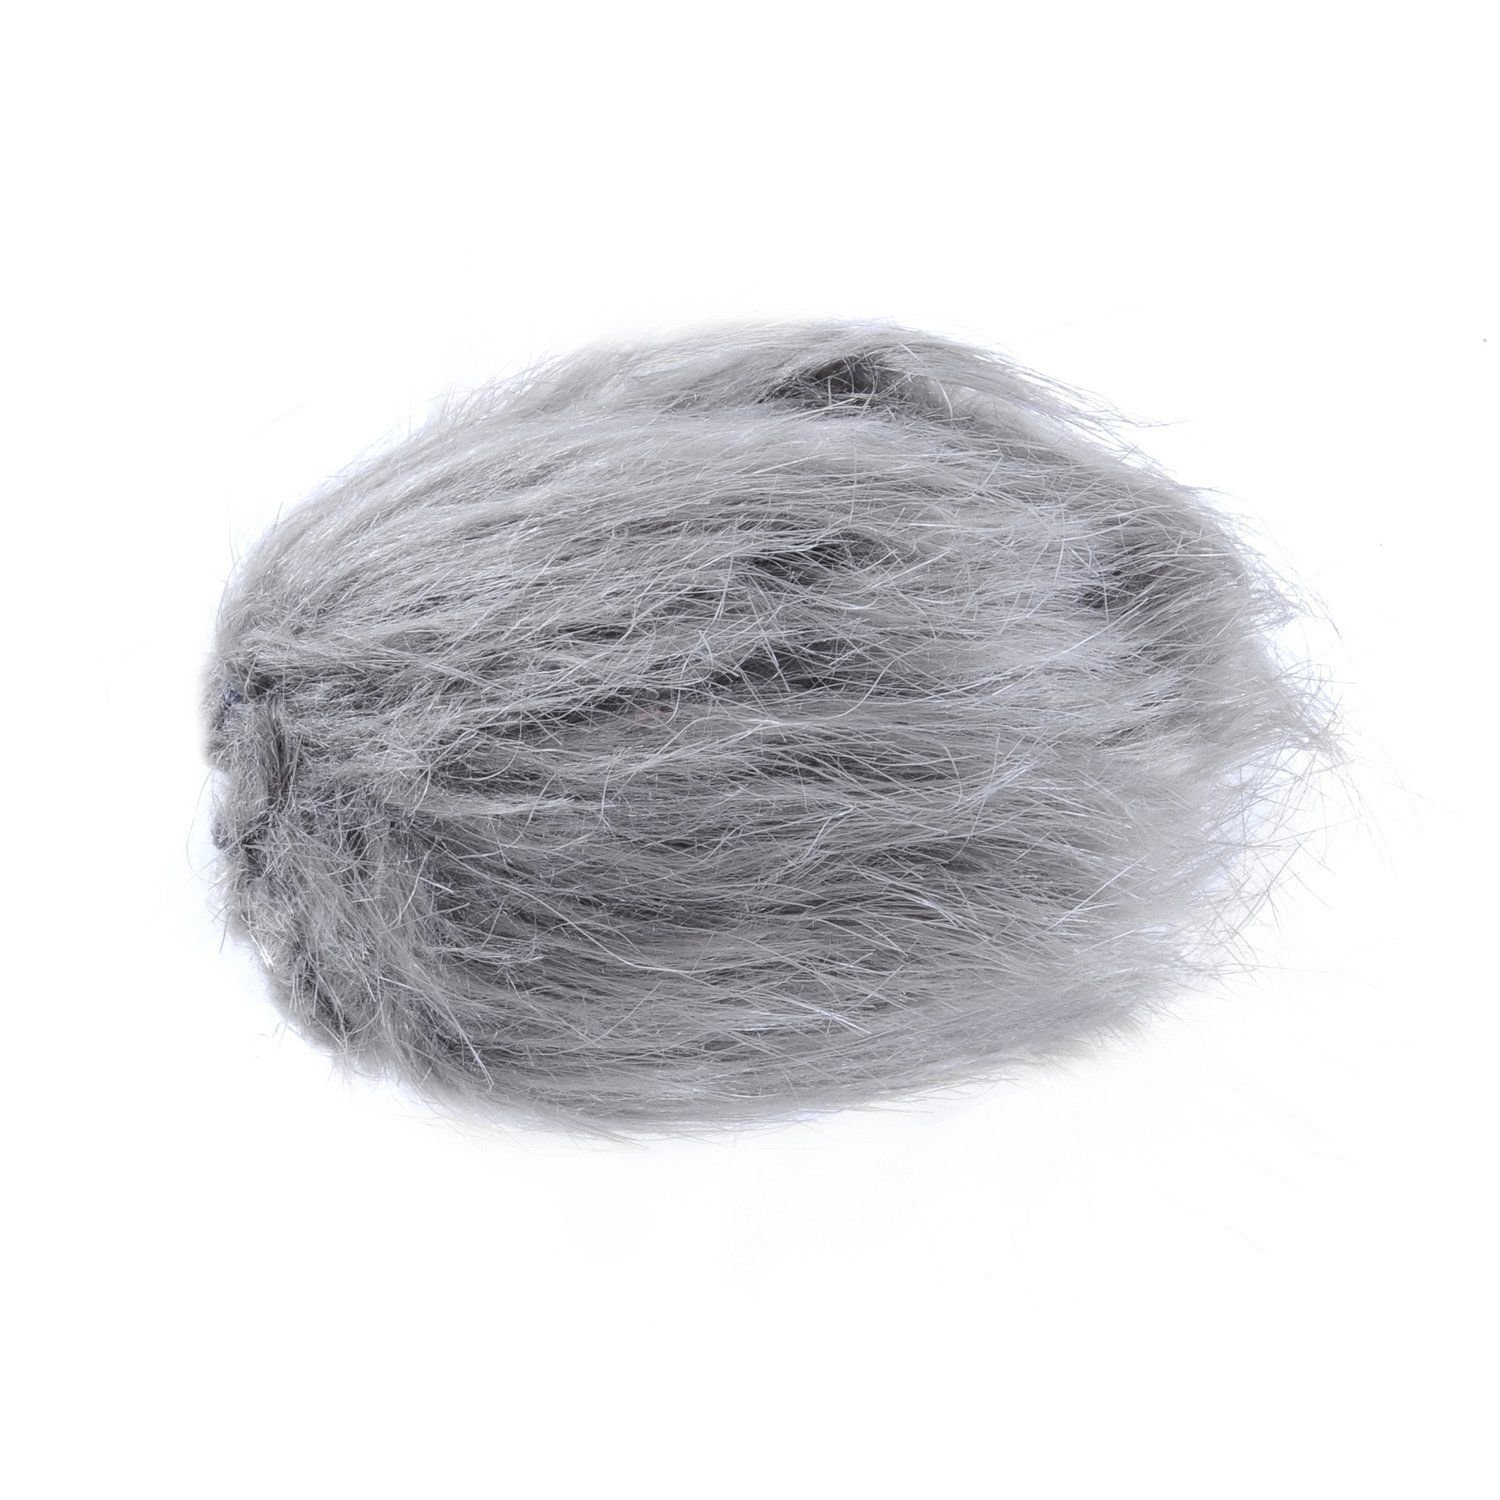 Movo WS1 Furry Outdoor Microphone Windscreen Muff for Small Compact Microphones up to 2.5'' X 40mm (L x D) for the Zoom H1, Apogee MiC and More (Light Gray)